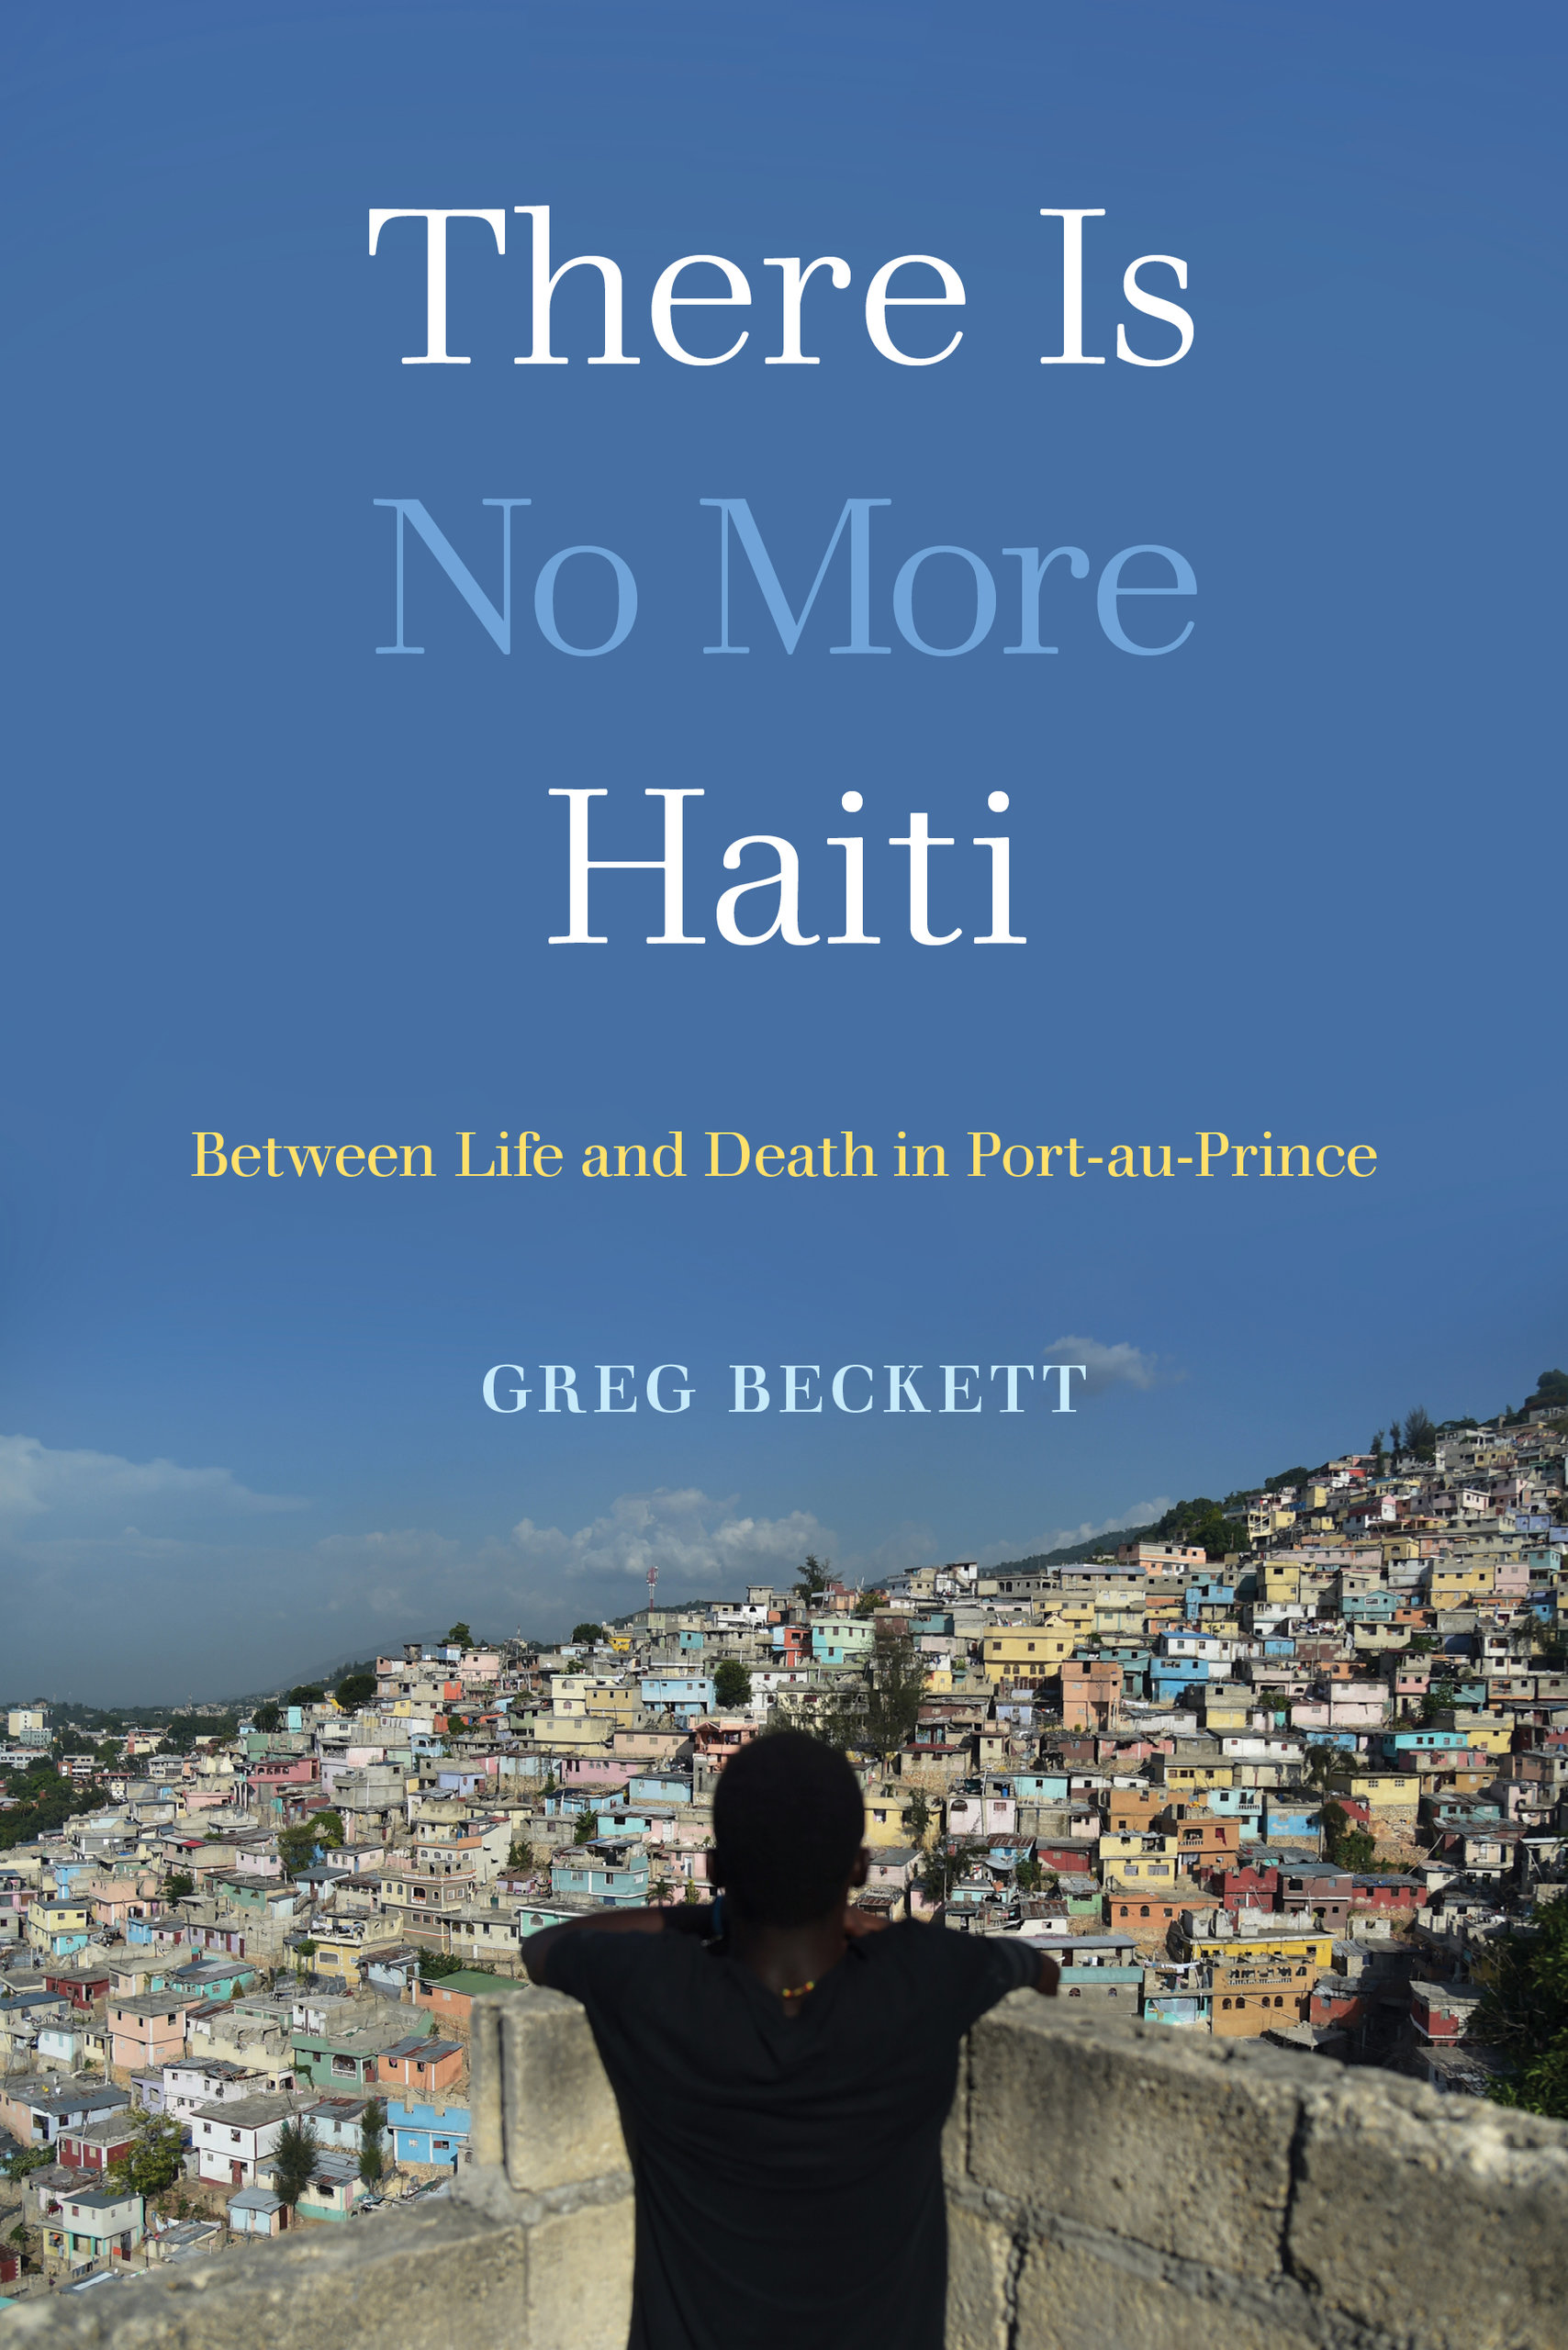 No More Haiti